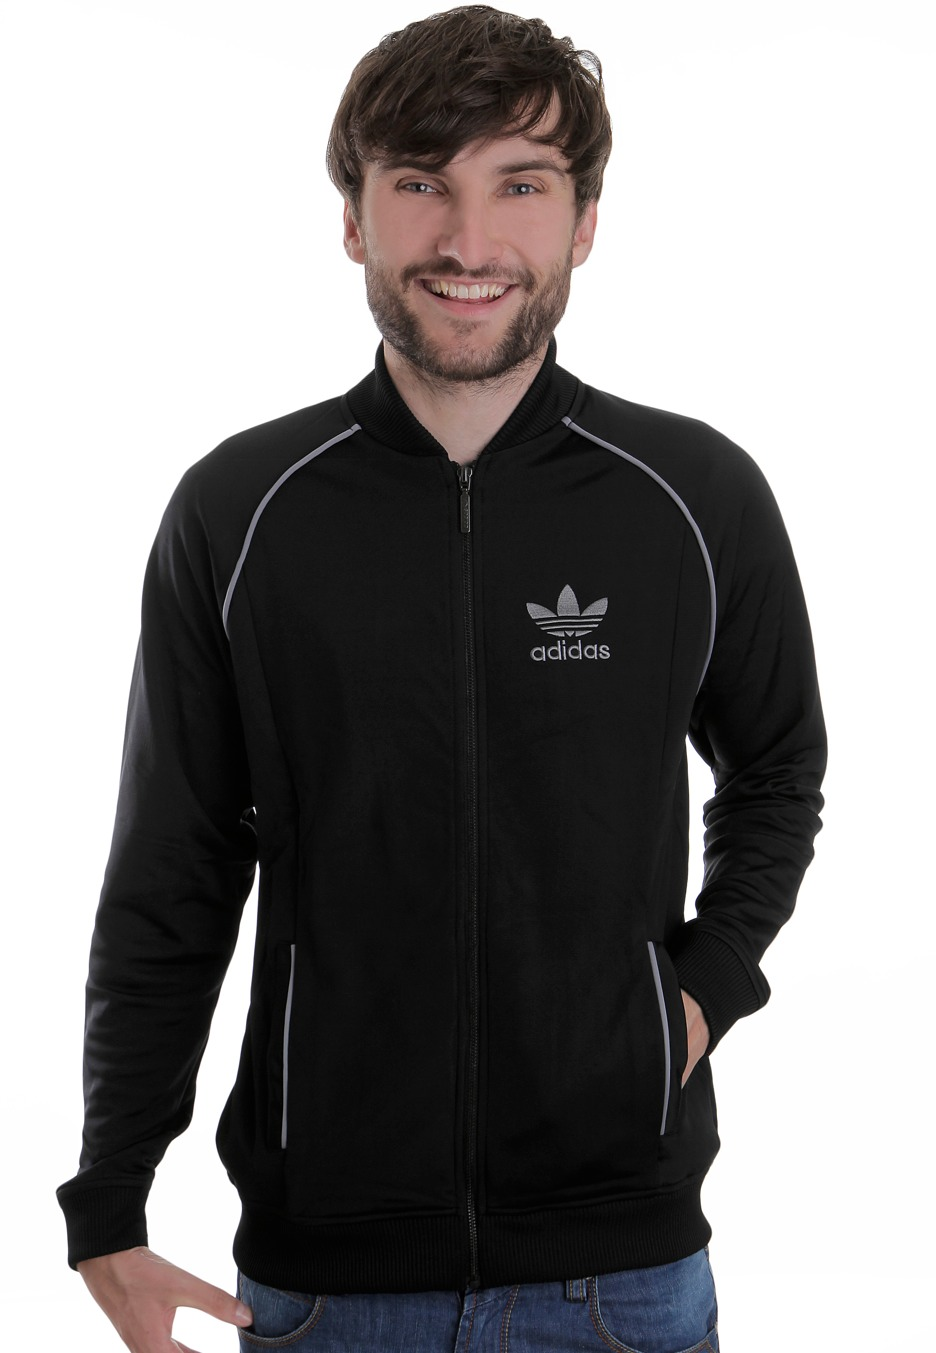 adidas superstar mens jacket. Black Bedroom Furniture Sets. Home Design Ideas